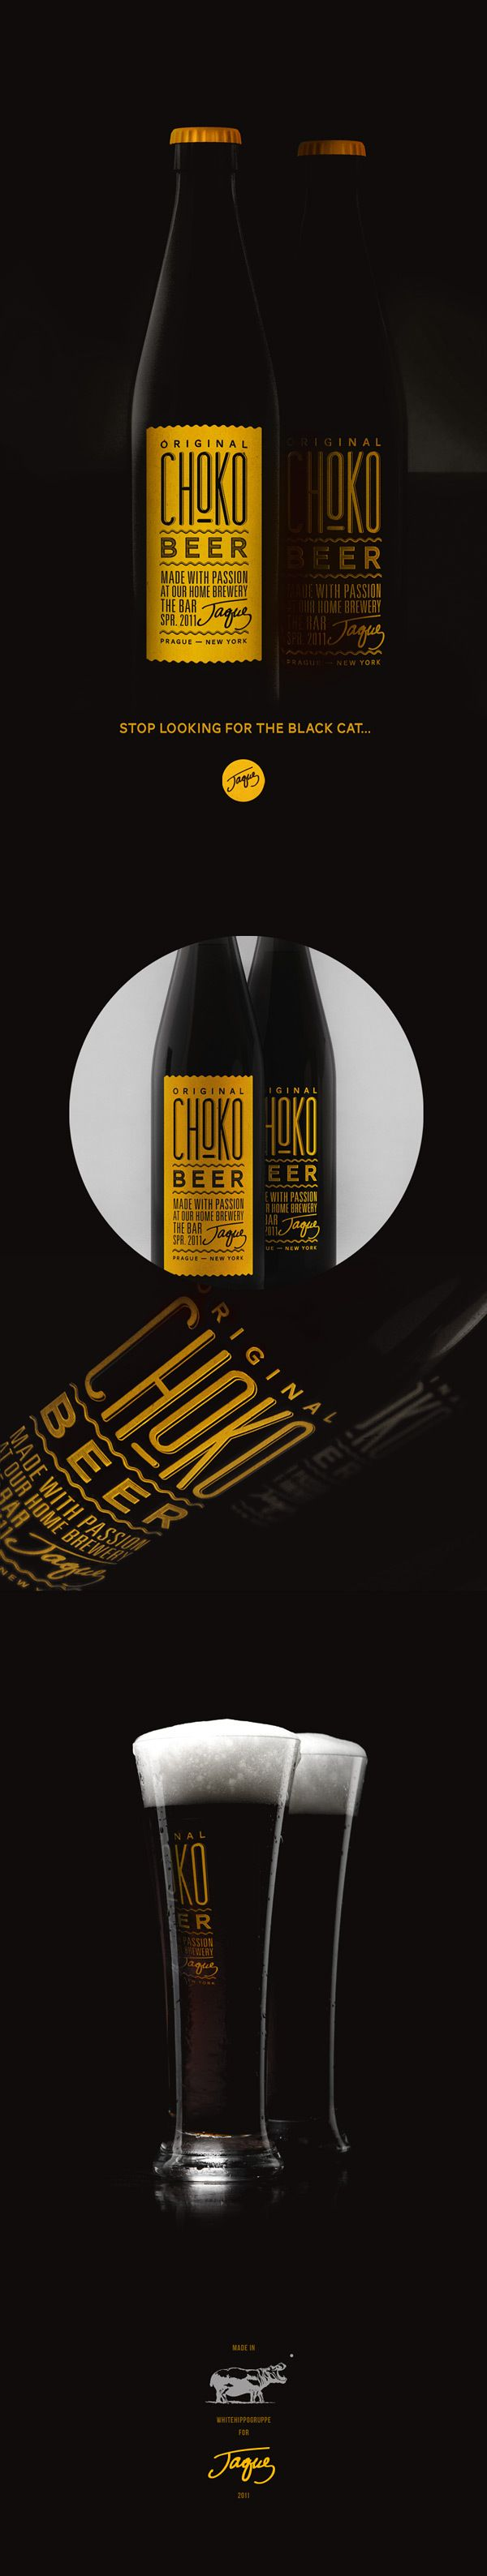 CHOCOBEER by Dmitry Gerais, via Behance.   Chocolate beer sounds interesting IMPDO. Anybody had this?